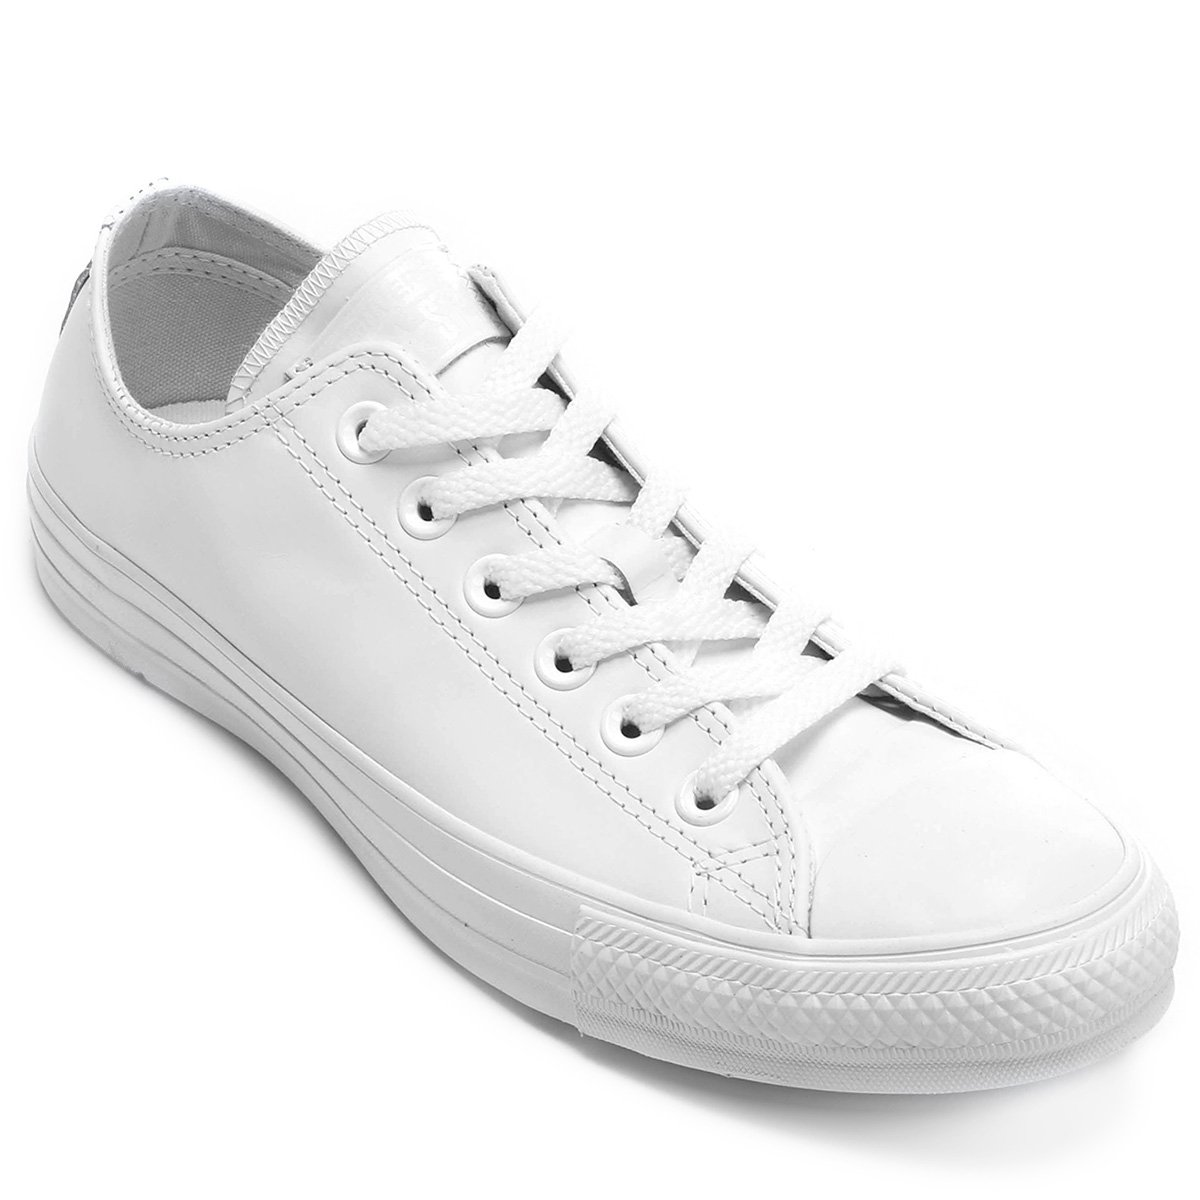 Tênis All Star Converse Ct As Monochrome Leather Branco